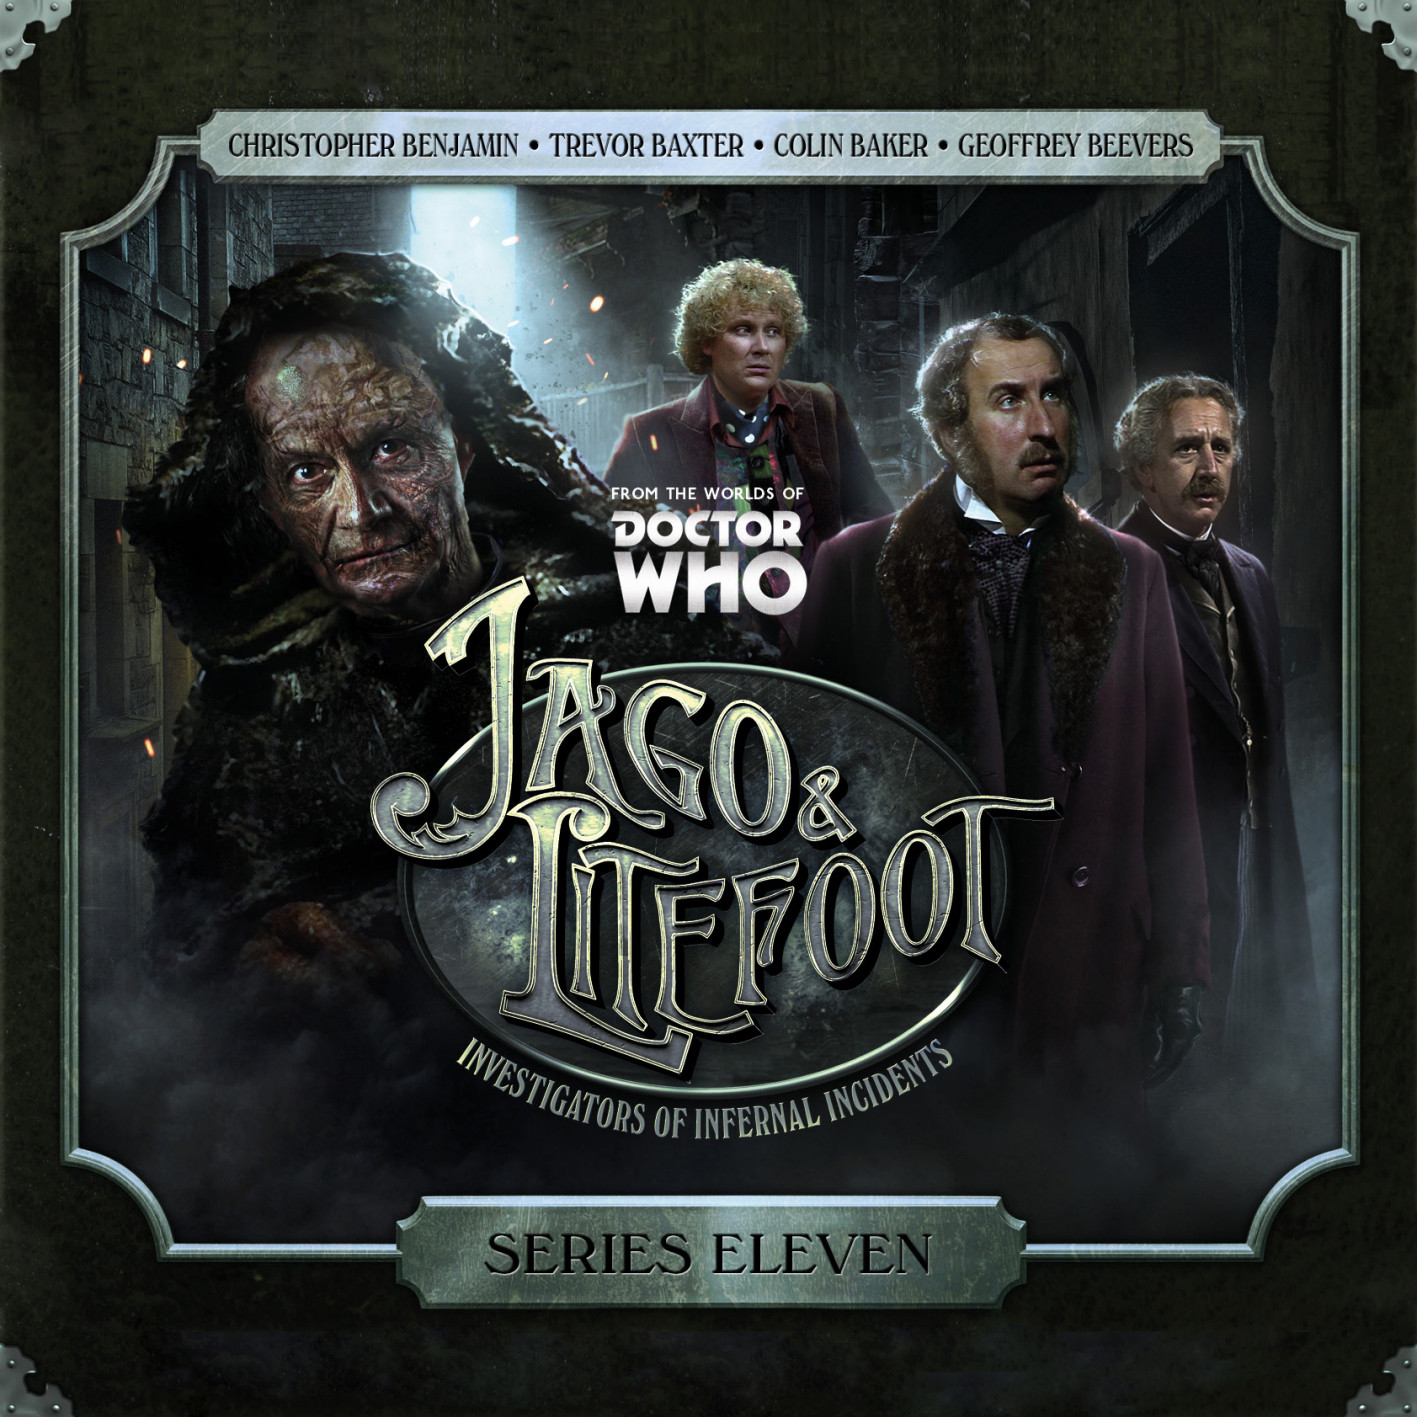 Jago & Litefoot Series 11 - Nigel Fairs, Matthew Sweet, Simon Barnard, Paul Morris, Justin Richards